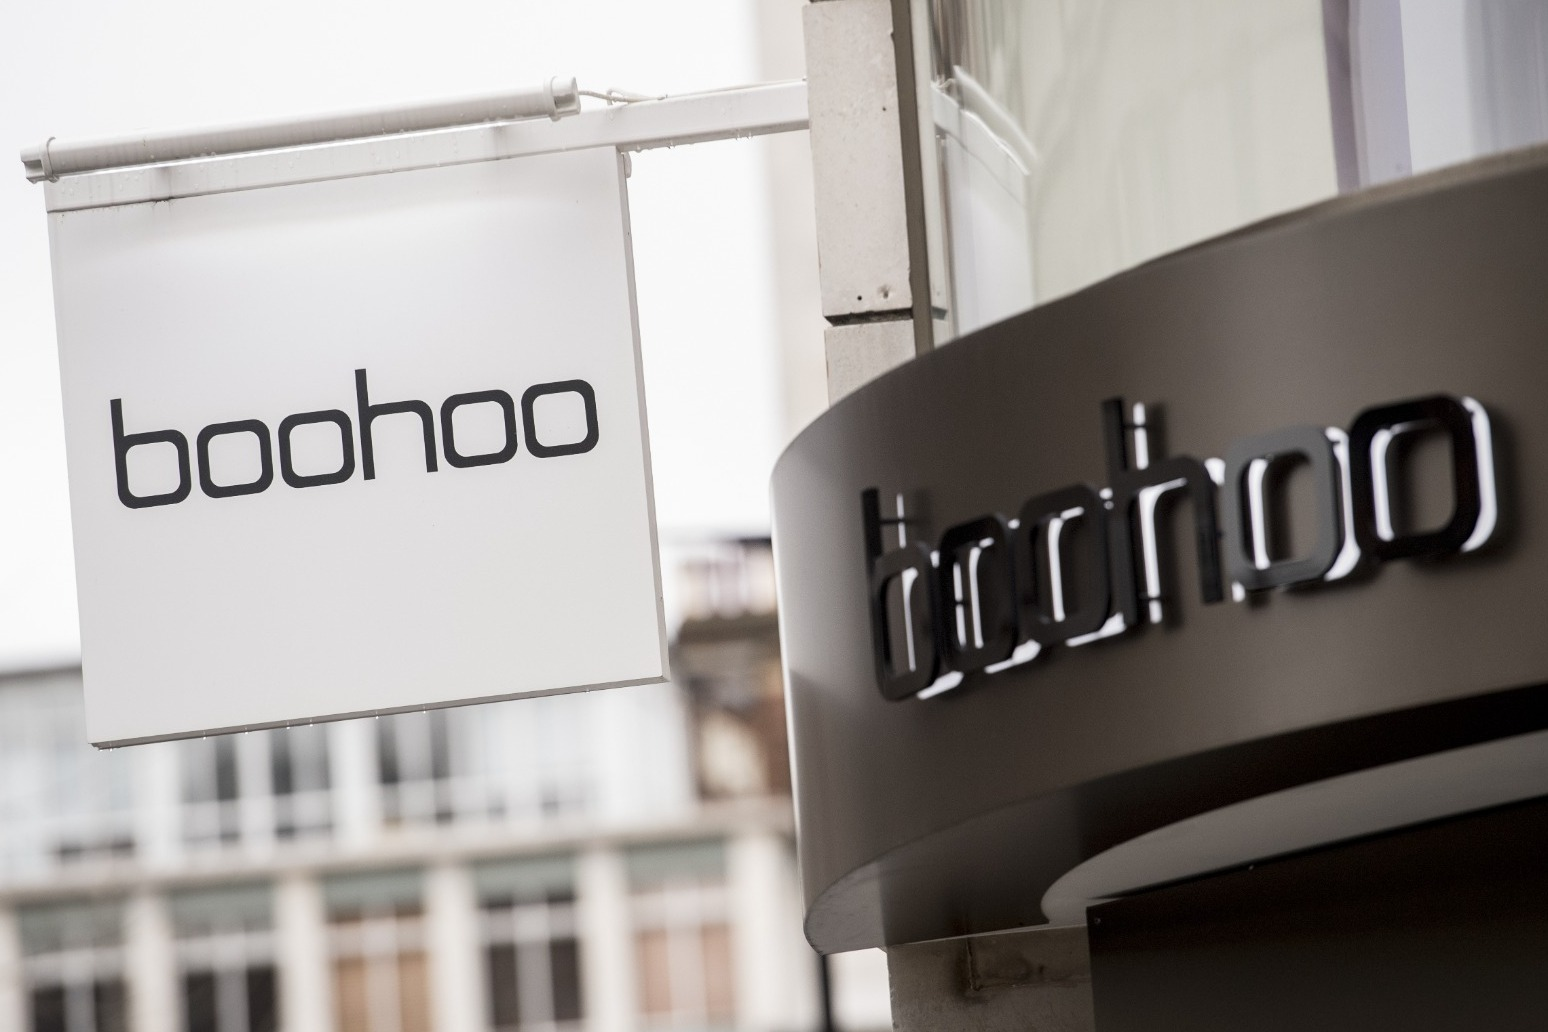 Boohoo to create 5,000 jobs in expansion plans